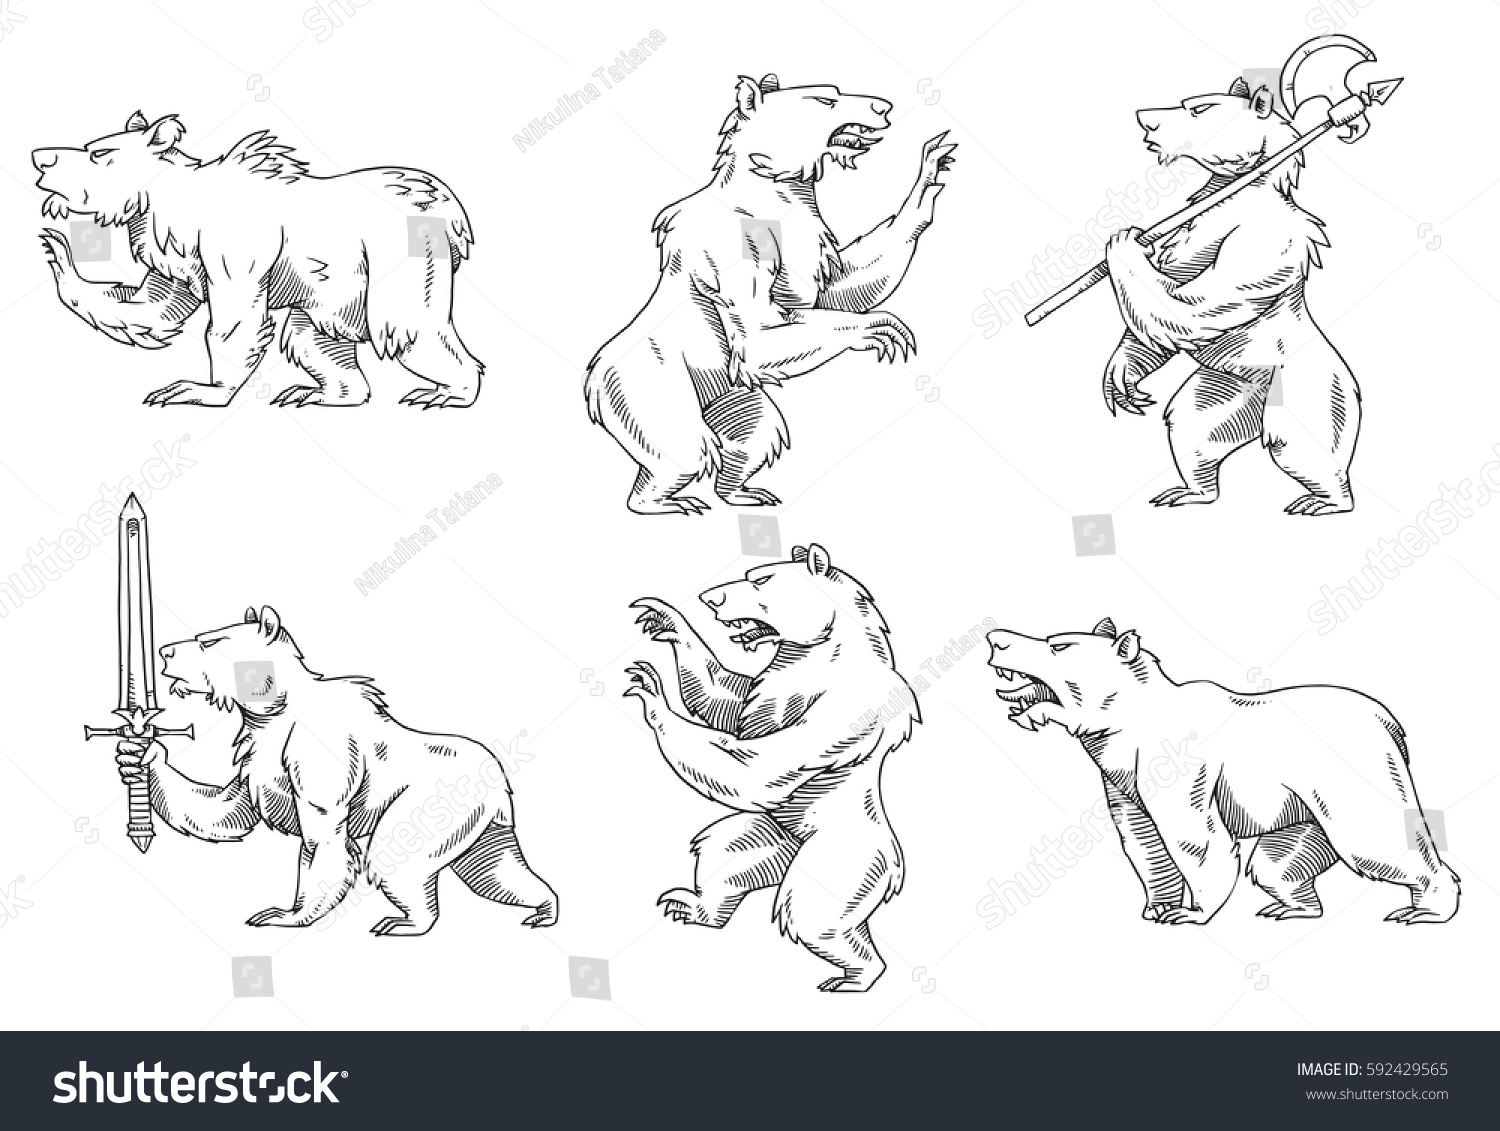 How to breed heraldic dragon - Vector Set Of Images Of Heraldic Bears In Different Poses With Different Weapons On A White